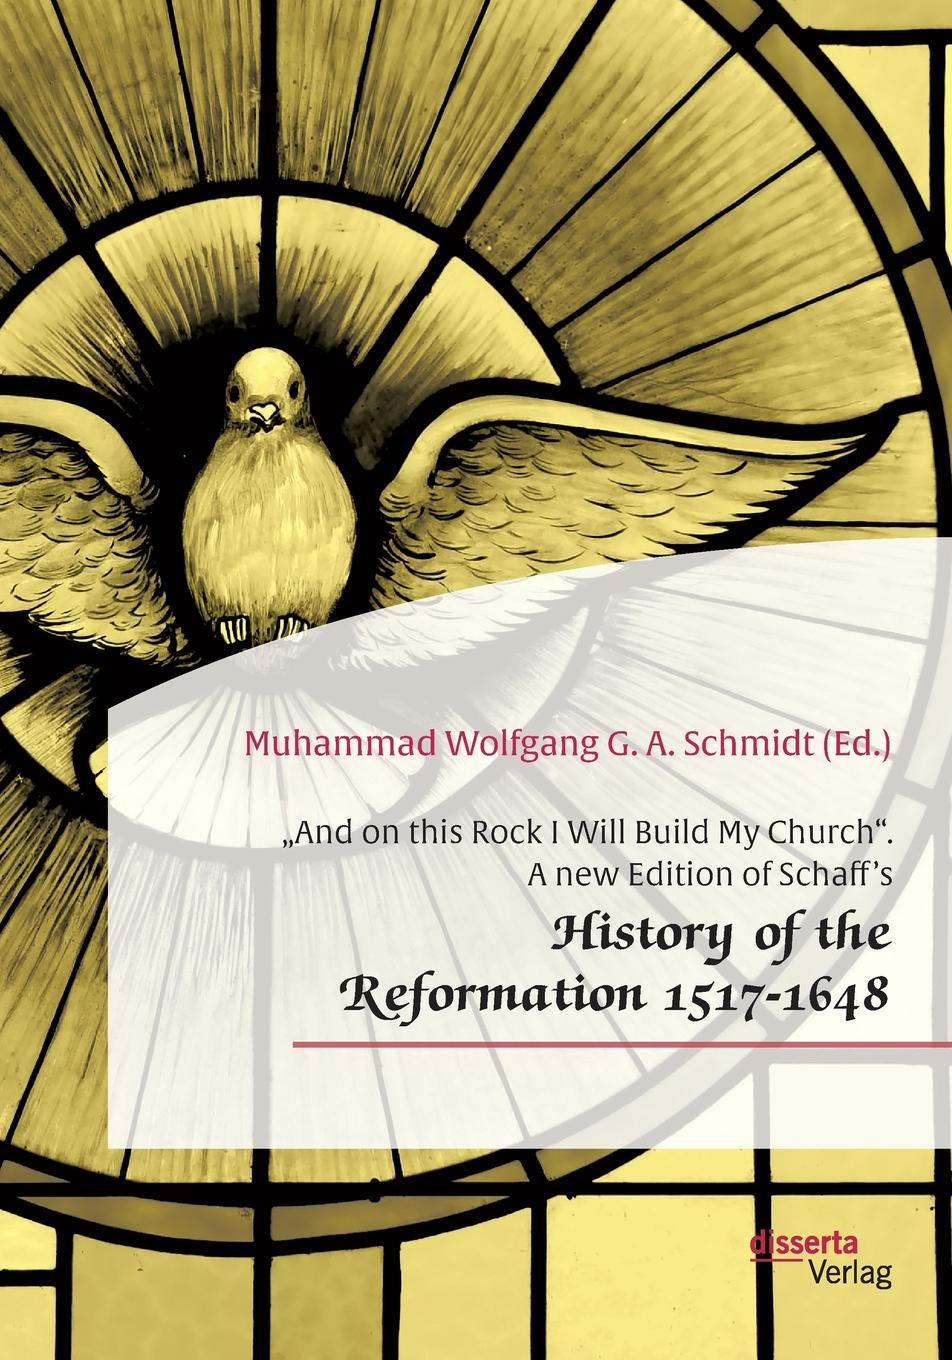 Muhammad Wolfgang G. A. Schmidt .And on this Rock I Will Build My Church. A new Edition of Schaff.s .History of the Reformation 1517-1648 kenneth appold g the reformation a brief history